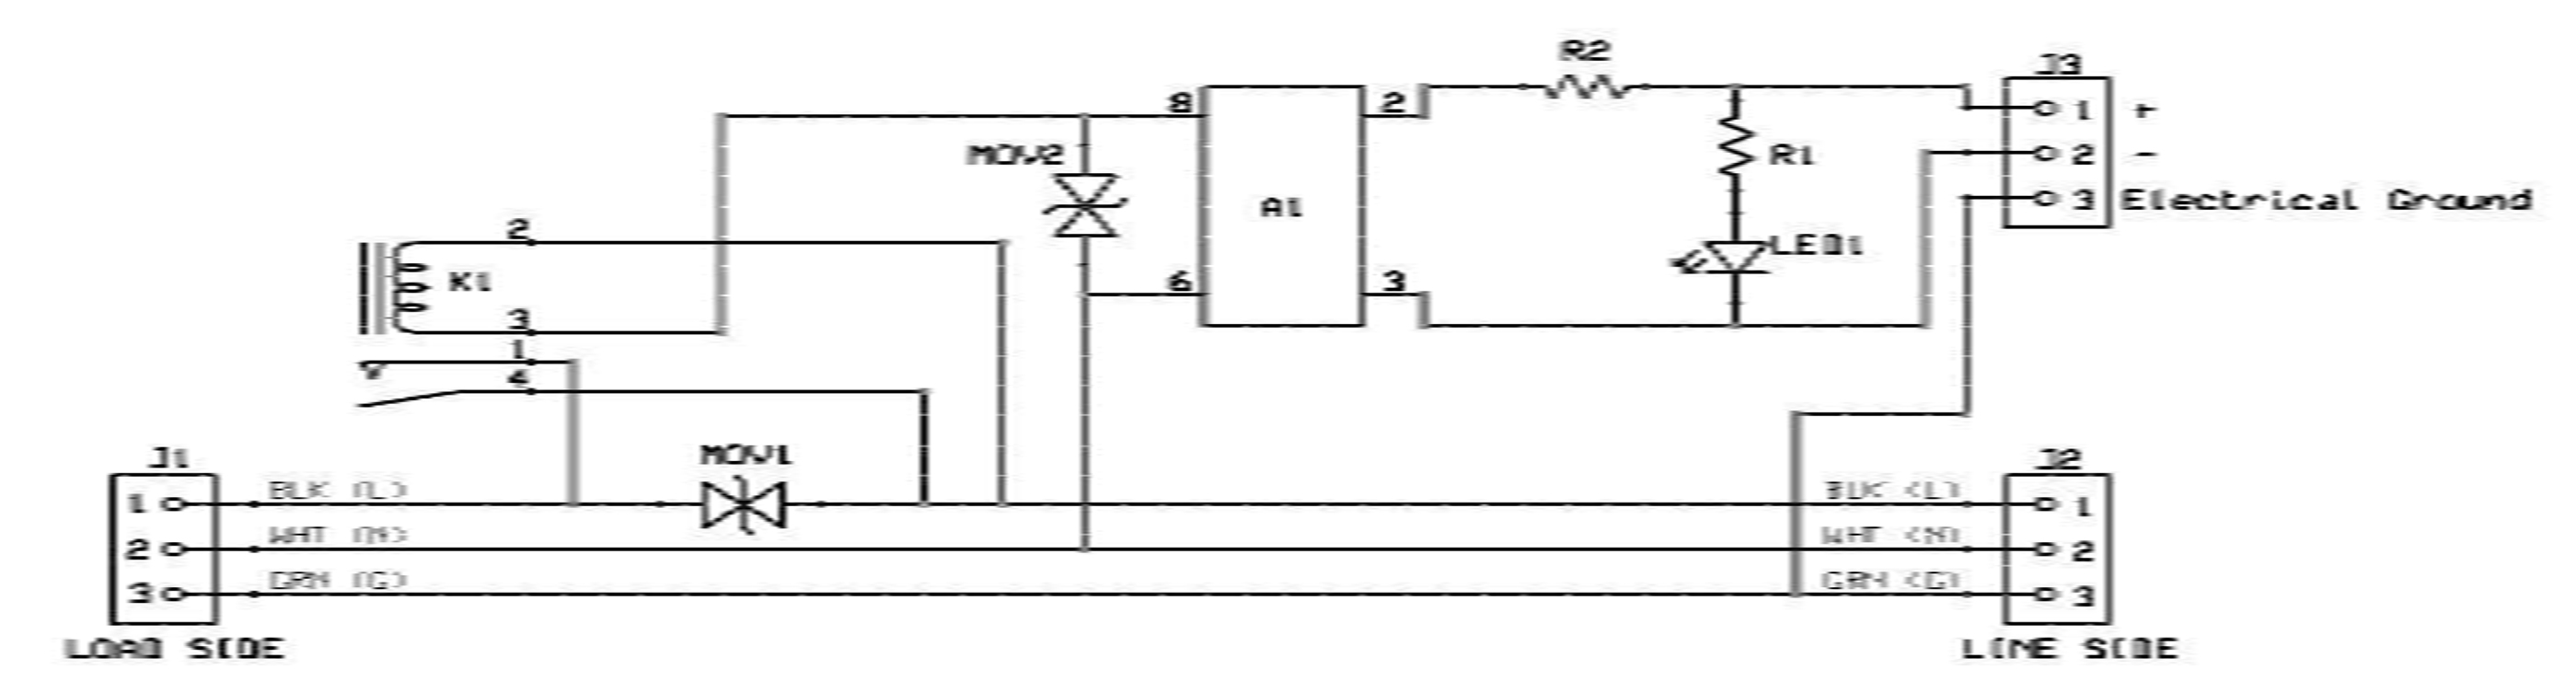 Ssr Ticking When Controlling Heater likewise Solid State Relay Circuits Diagrams further Solenoid Valve Electrical Symbol further Integrated Ssr likewise 98 ELEC Brake Light Switch Replacement. on ssr relay diagram